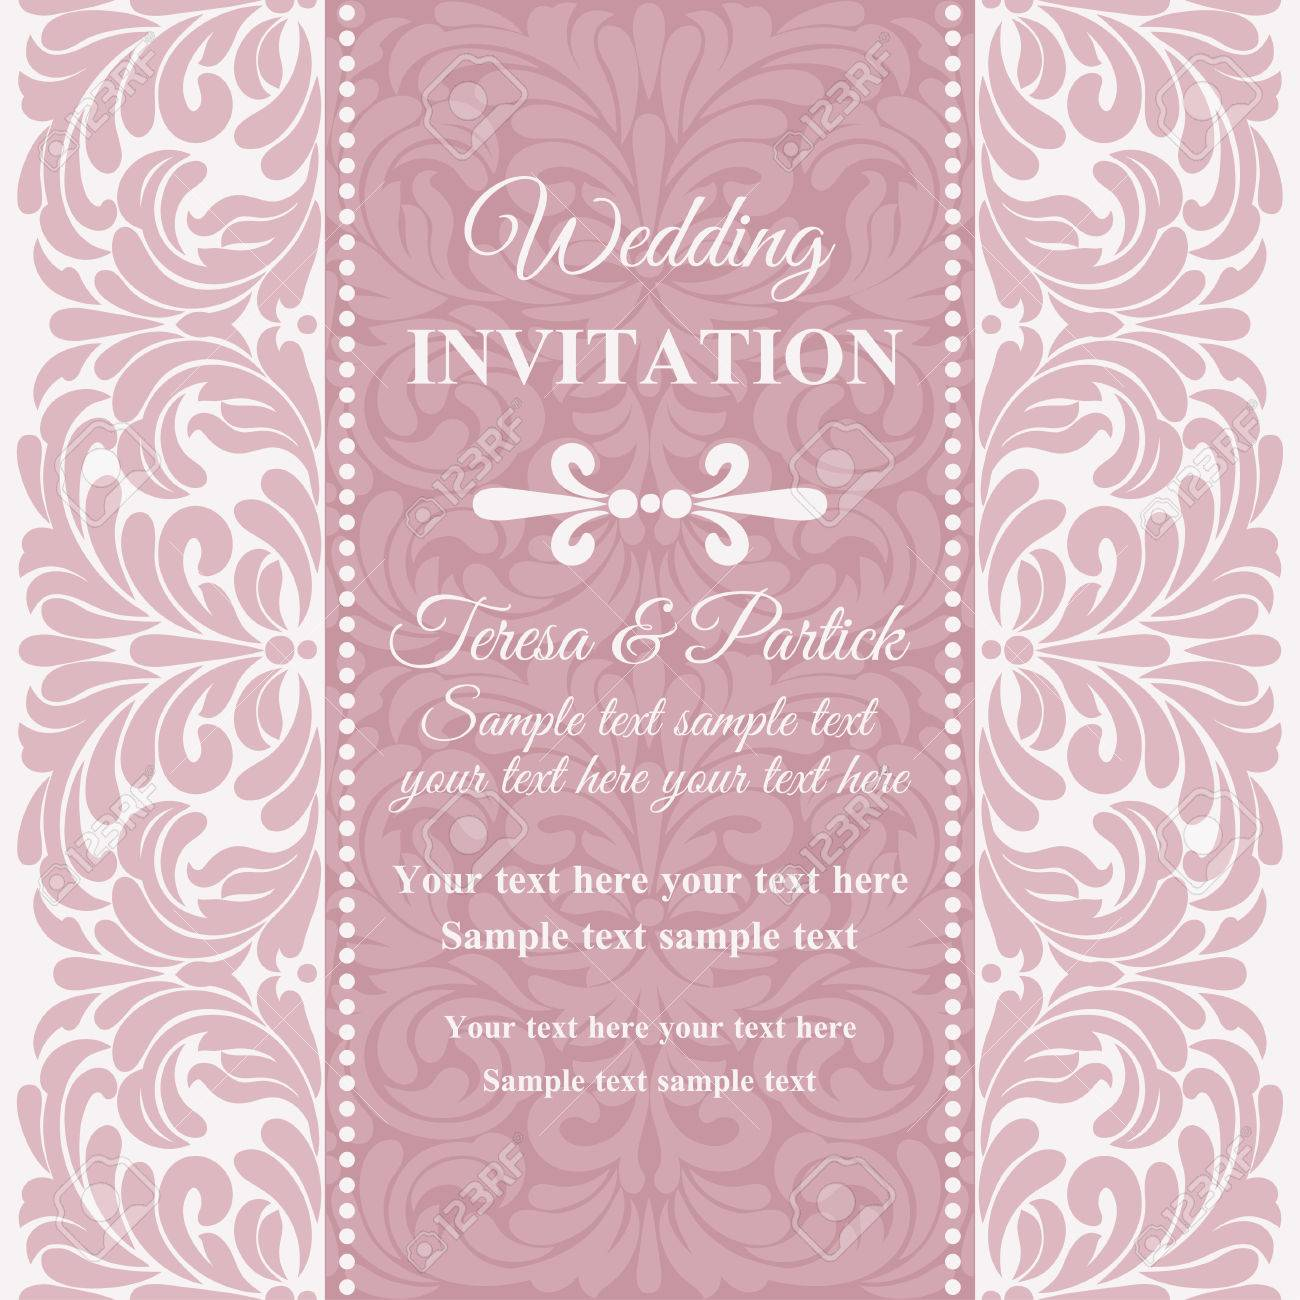 Antique Baroque Wedding Invitation Card In Old-fashioned Style ...